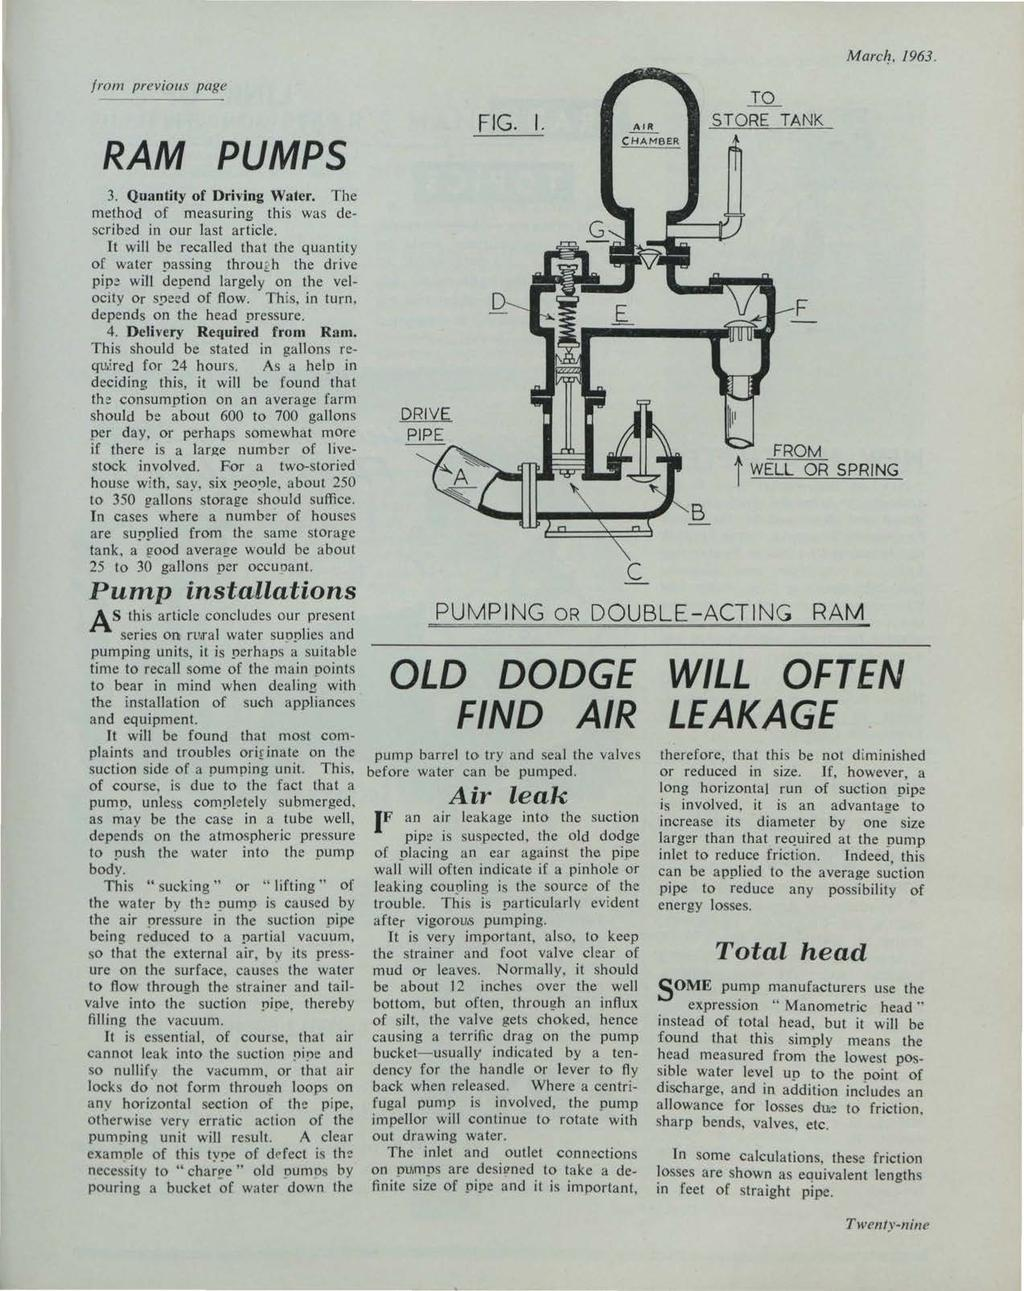 from previous page et al.: The Irish Plumber and Heating Contractor, March 1963 (complete is Marc!!. 1963. RAM PUMPS 3. Quantity of Driving Water.